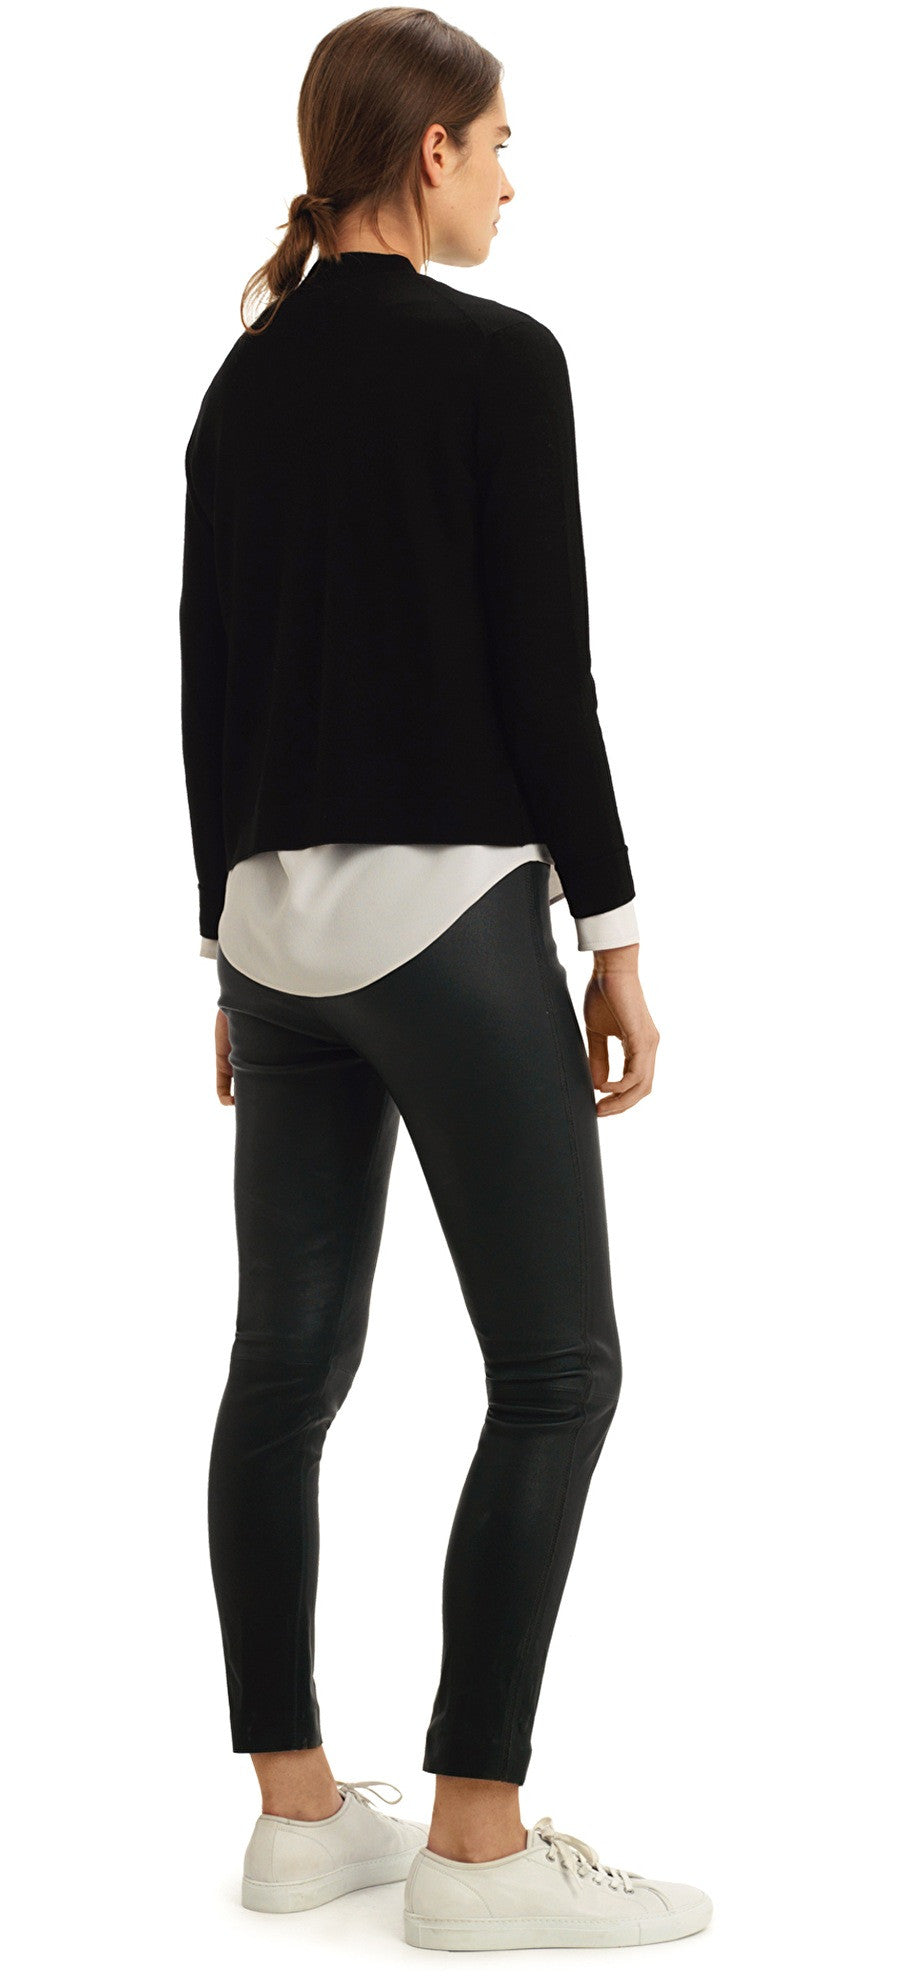 MEY MERINO BLACK FUNNEL NECK